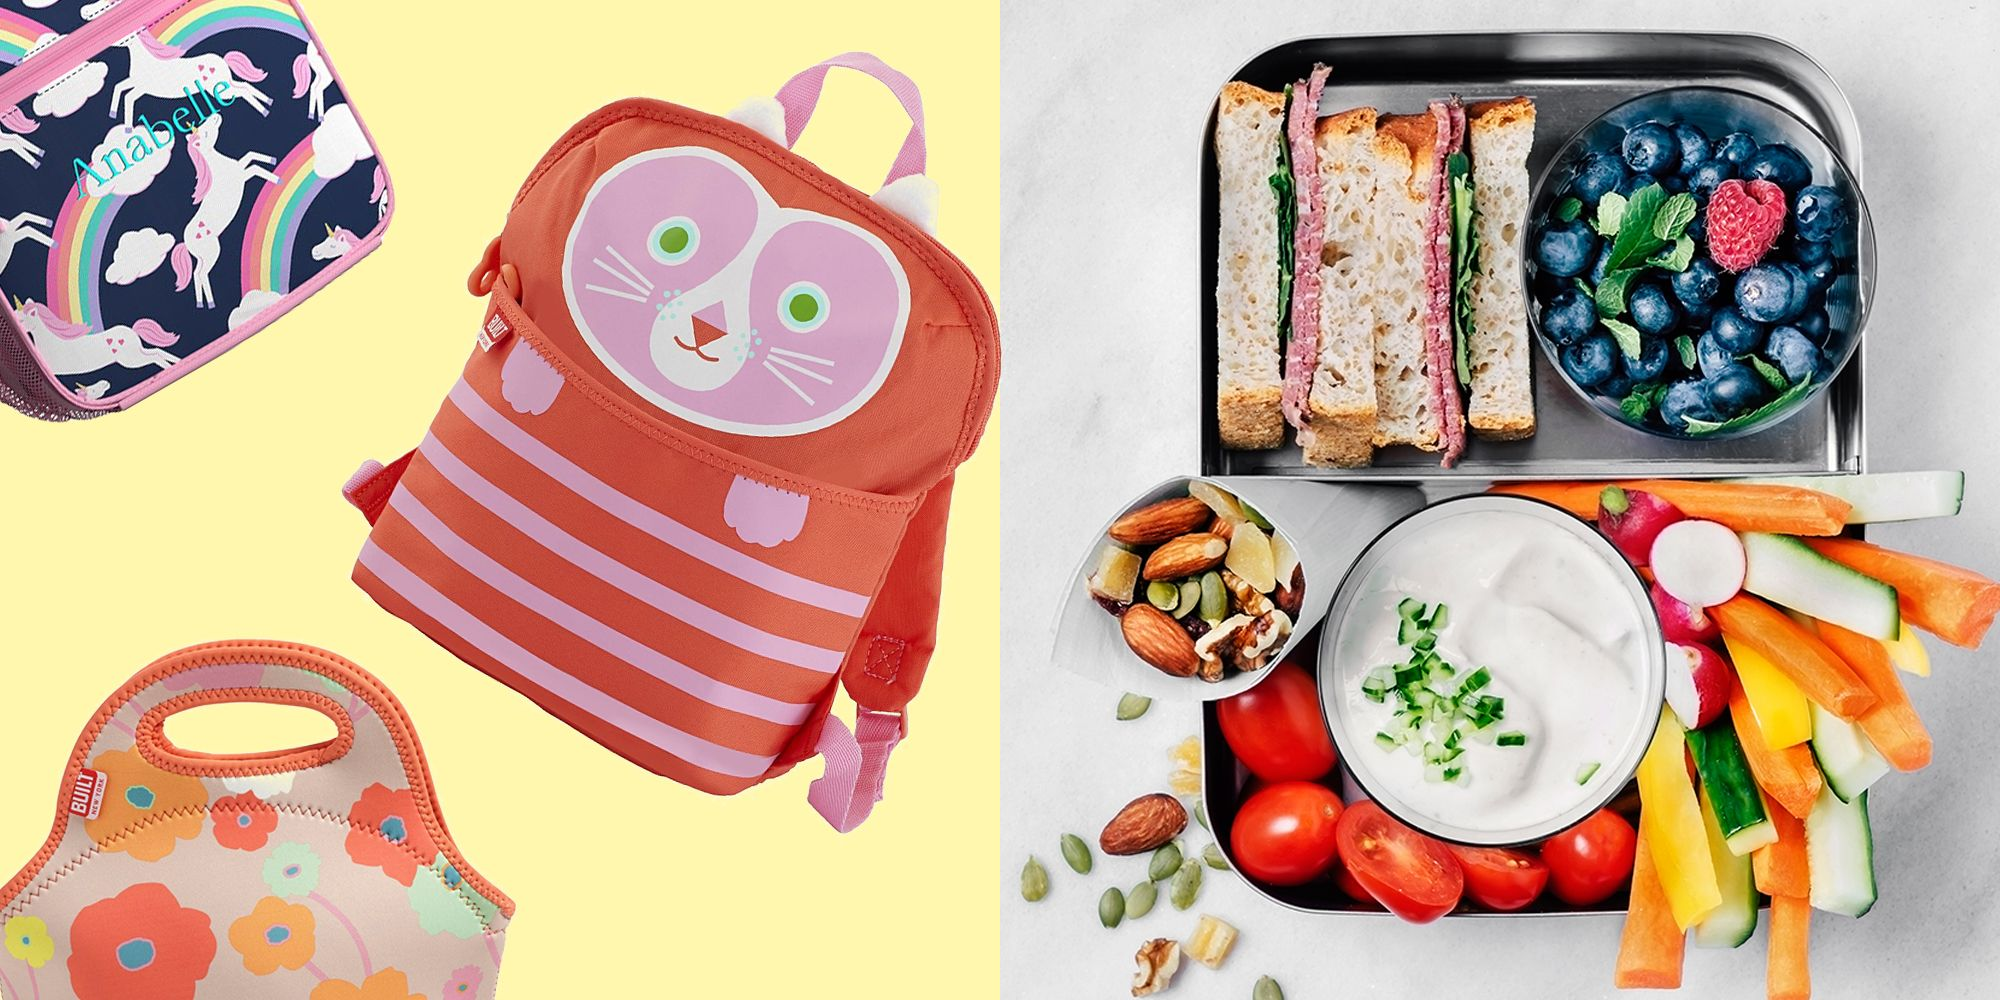 16 Best Kids Lunch Boxes   Bags 2019 - Top Rated School Lunch Box Reviews ff46d7146c